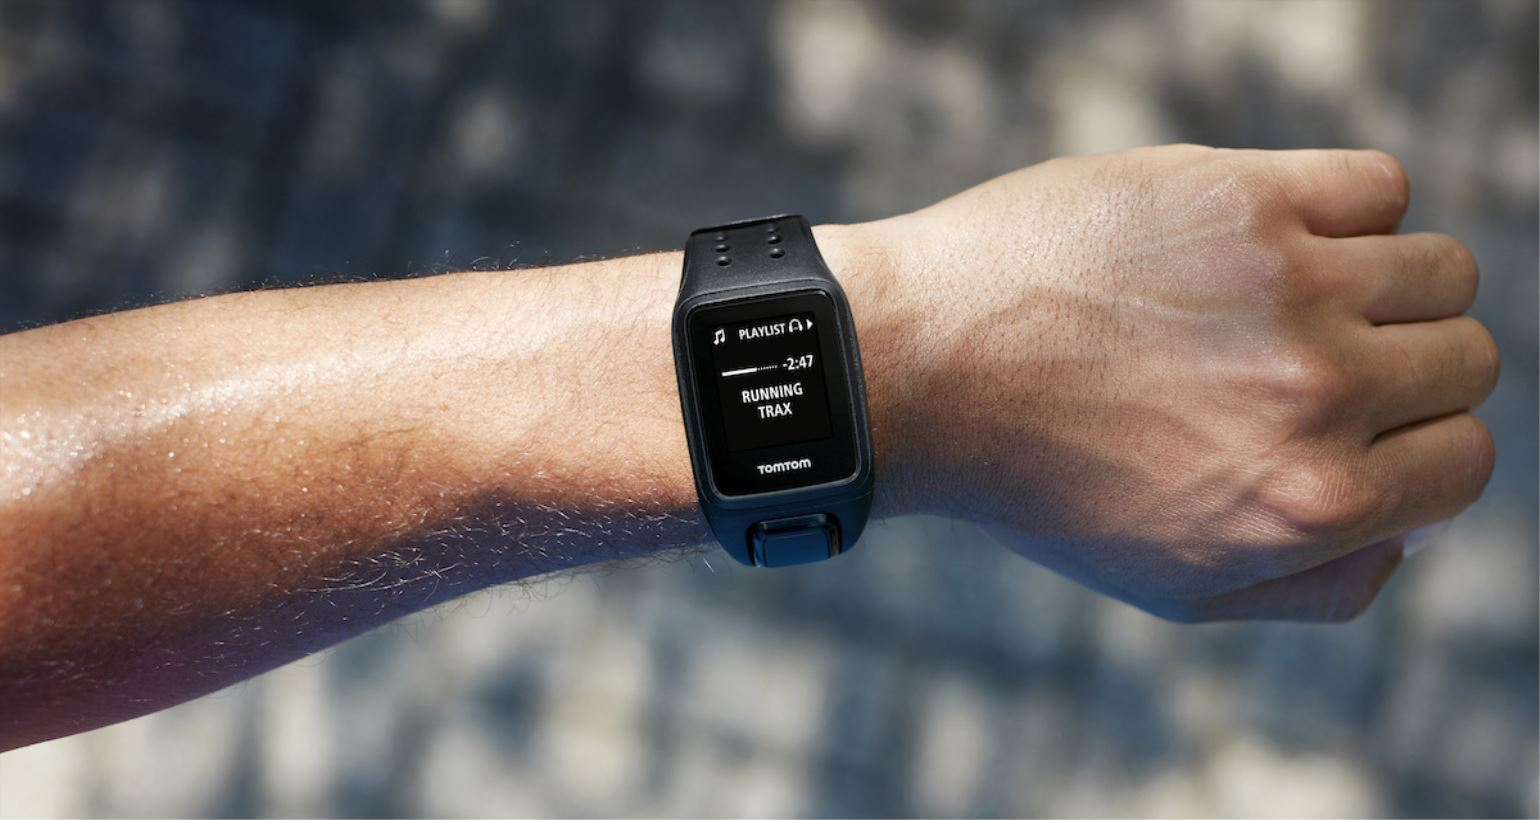 TomTom onthult fitness-wearable: de TomTom Spark